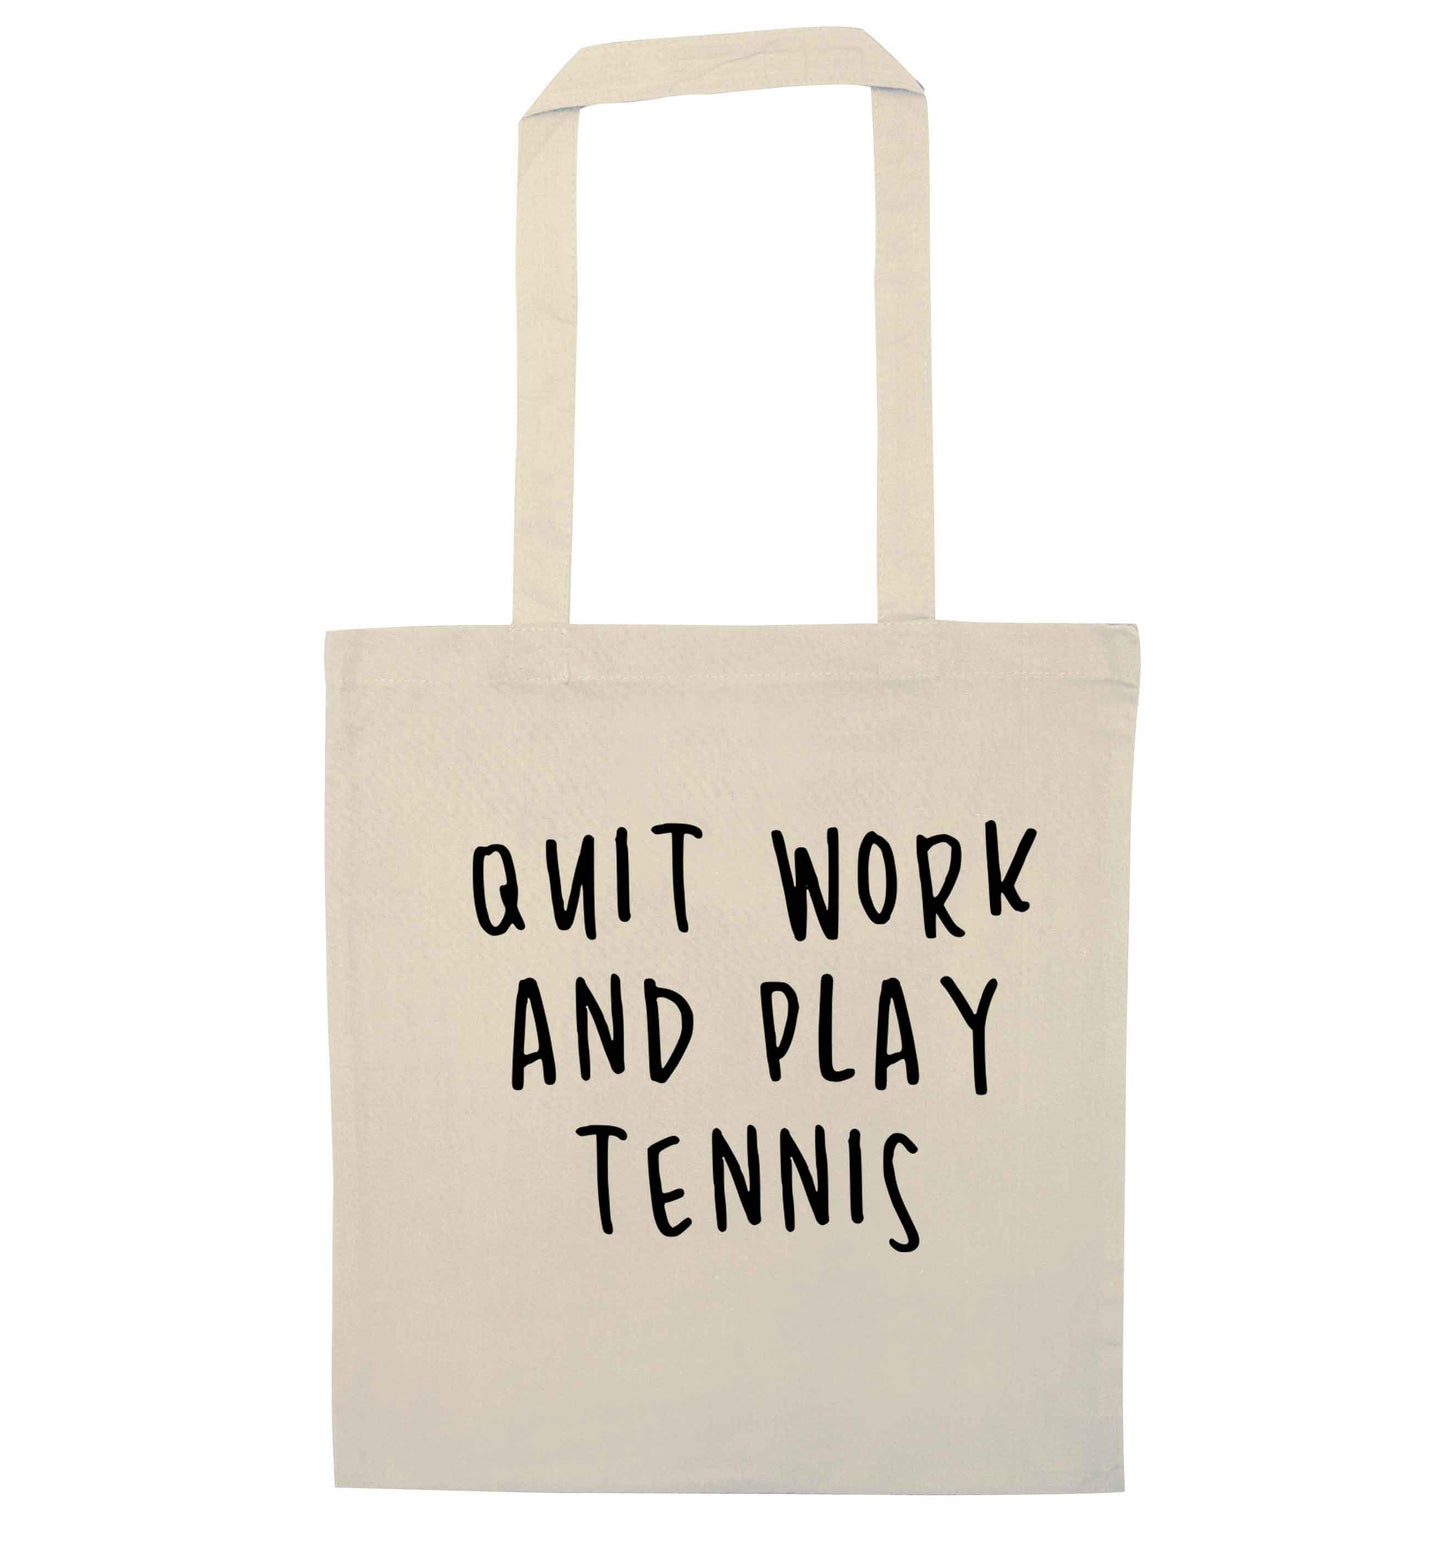 Quit work and play tennis natural tote bag